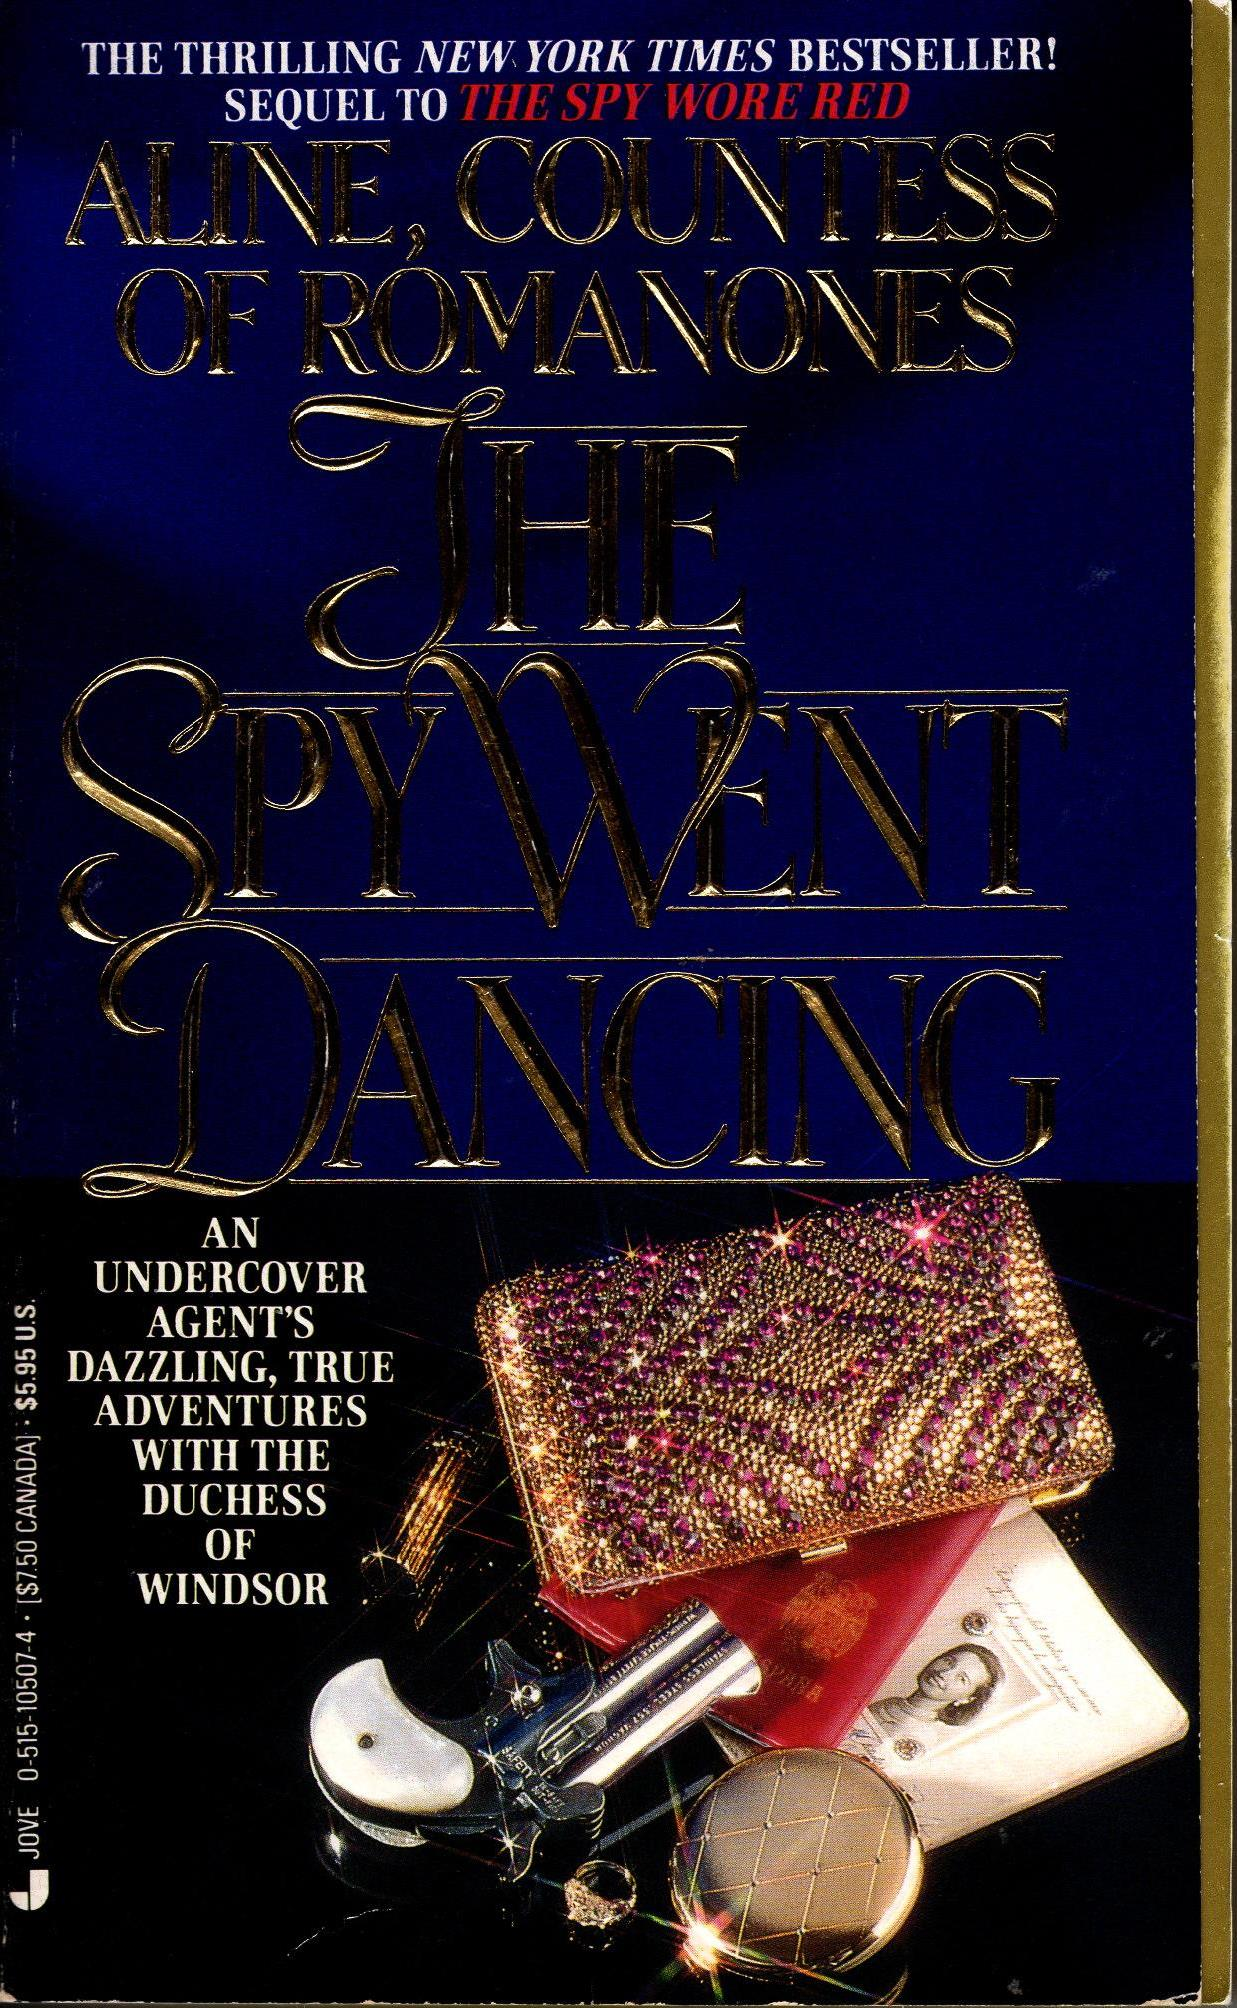 Image for SPY WENT DANCING, THE